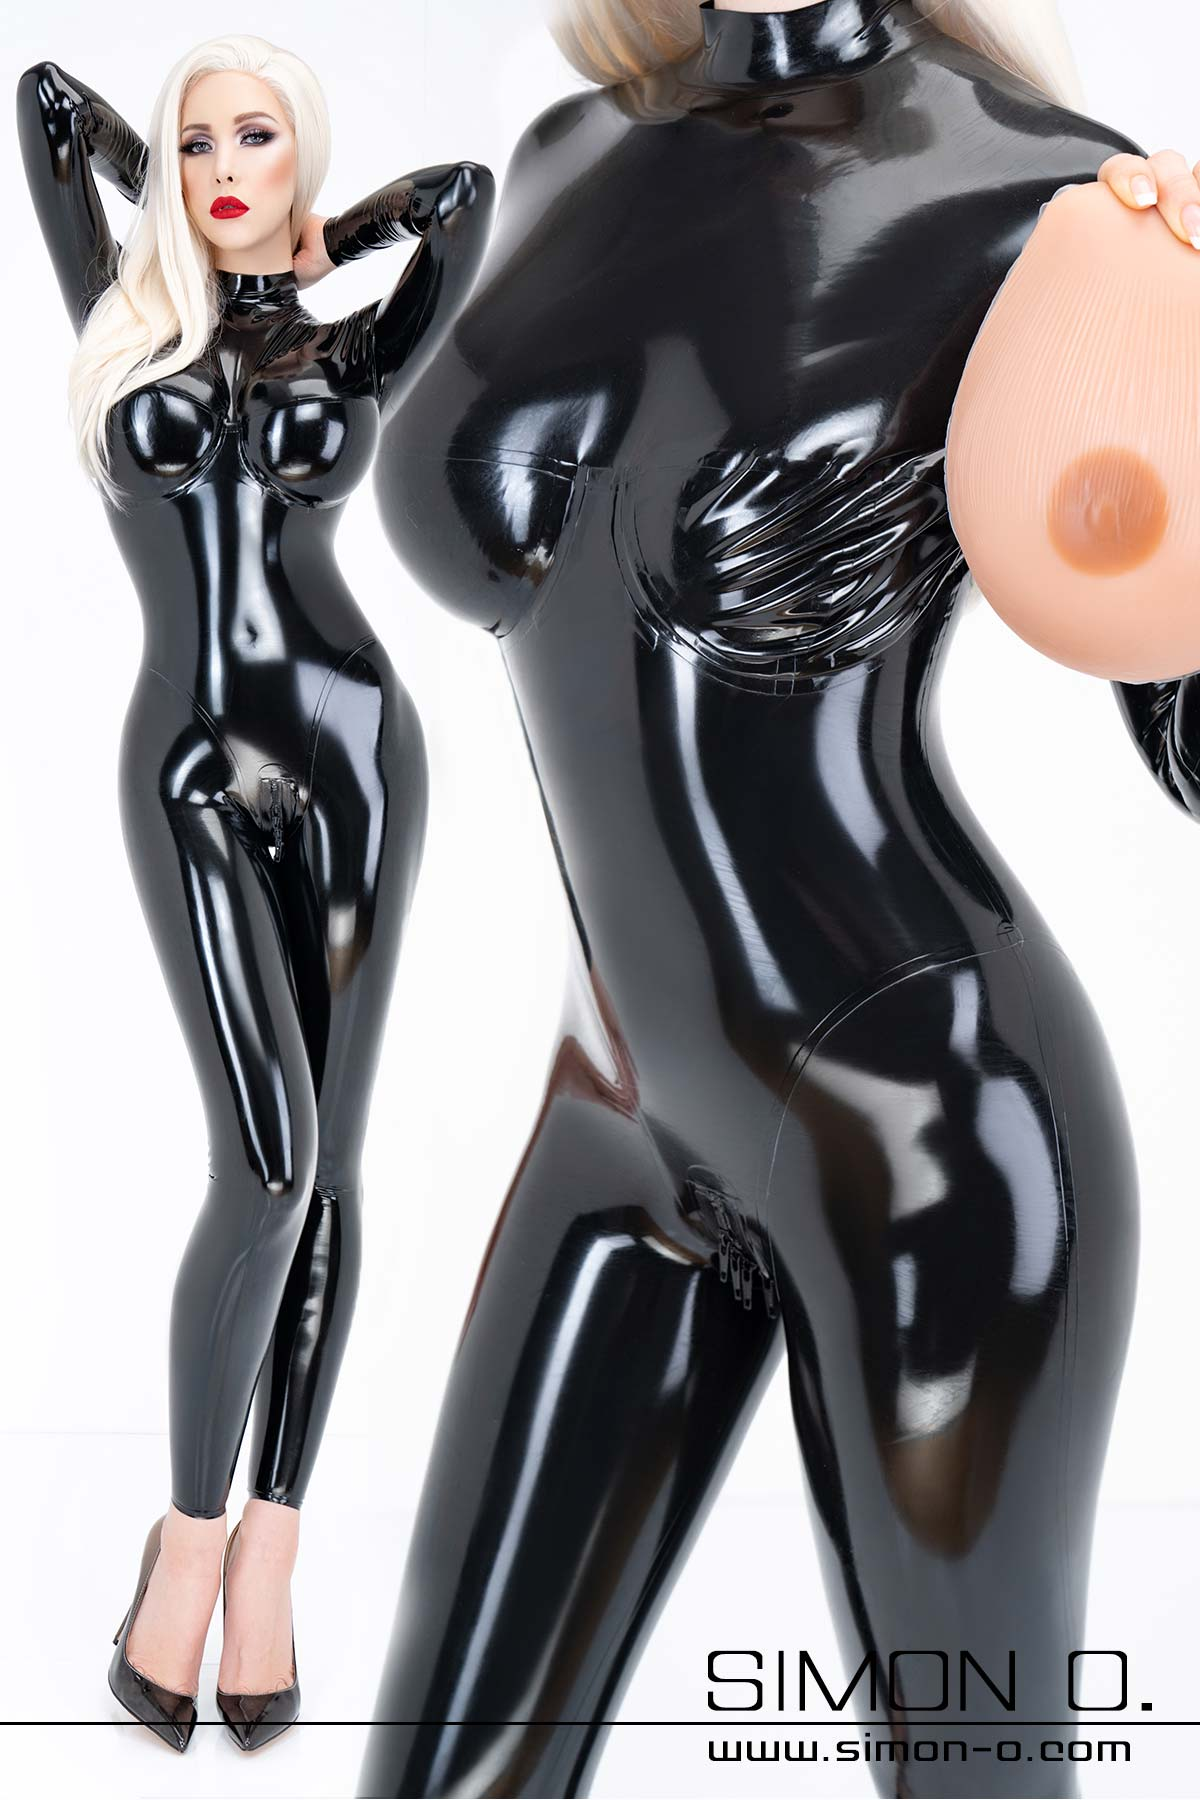 Big Boobs Latex Catsuit für Silikonbrusteinlagen in gläzenden schwarzen Latex